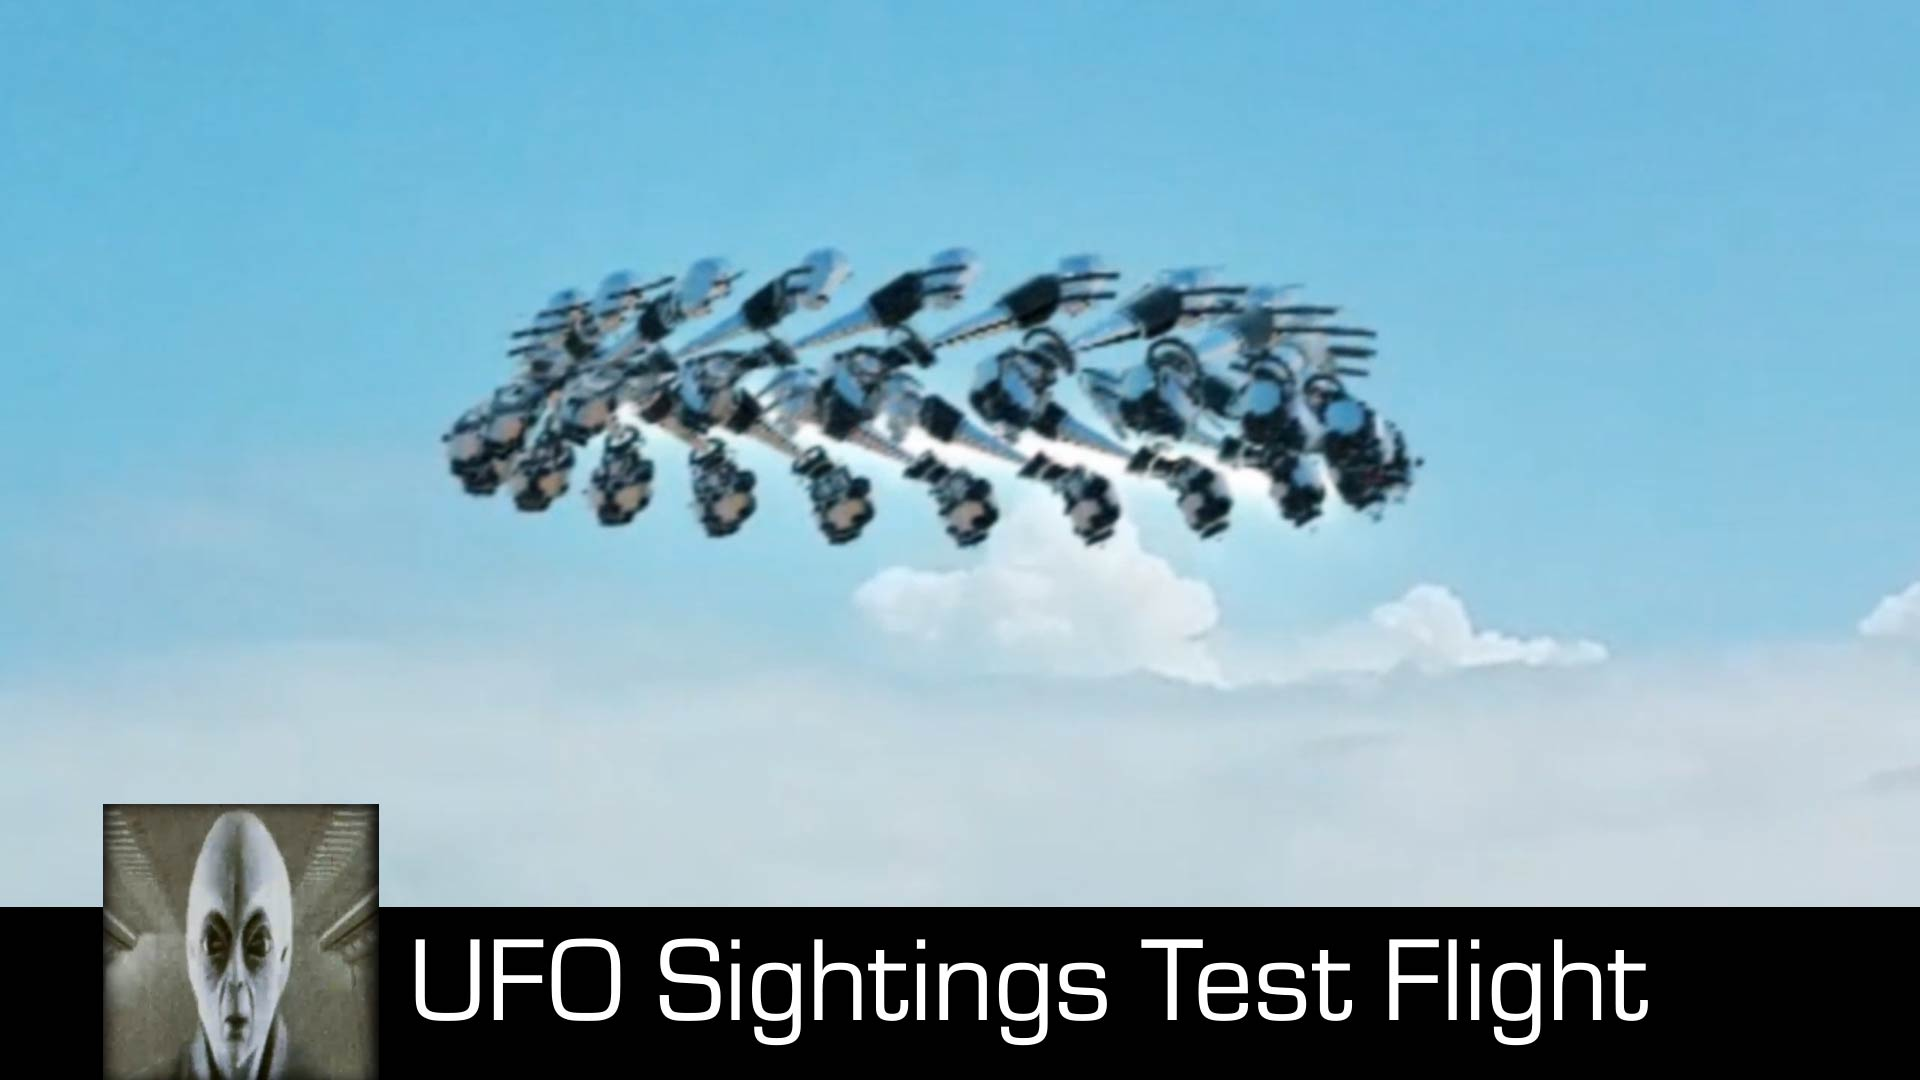 UFO Sightings Test Flight August 15th 2018